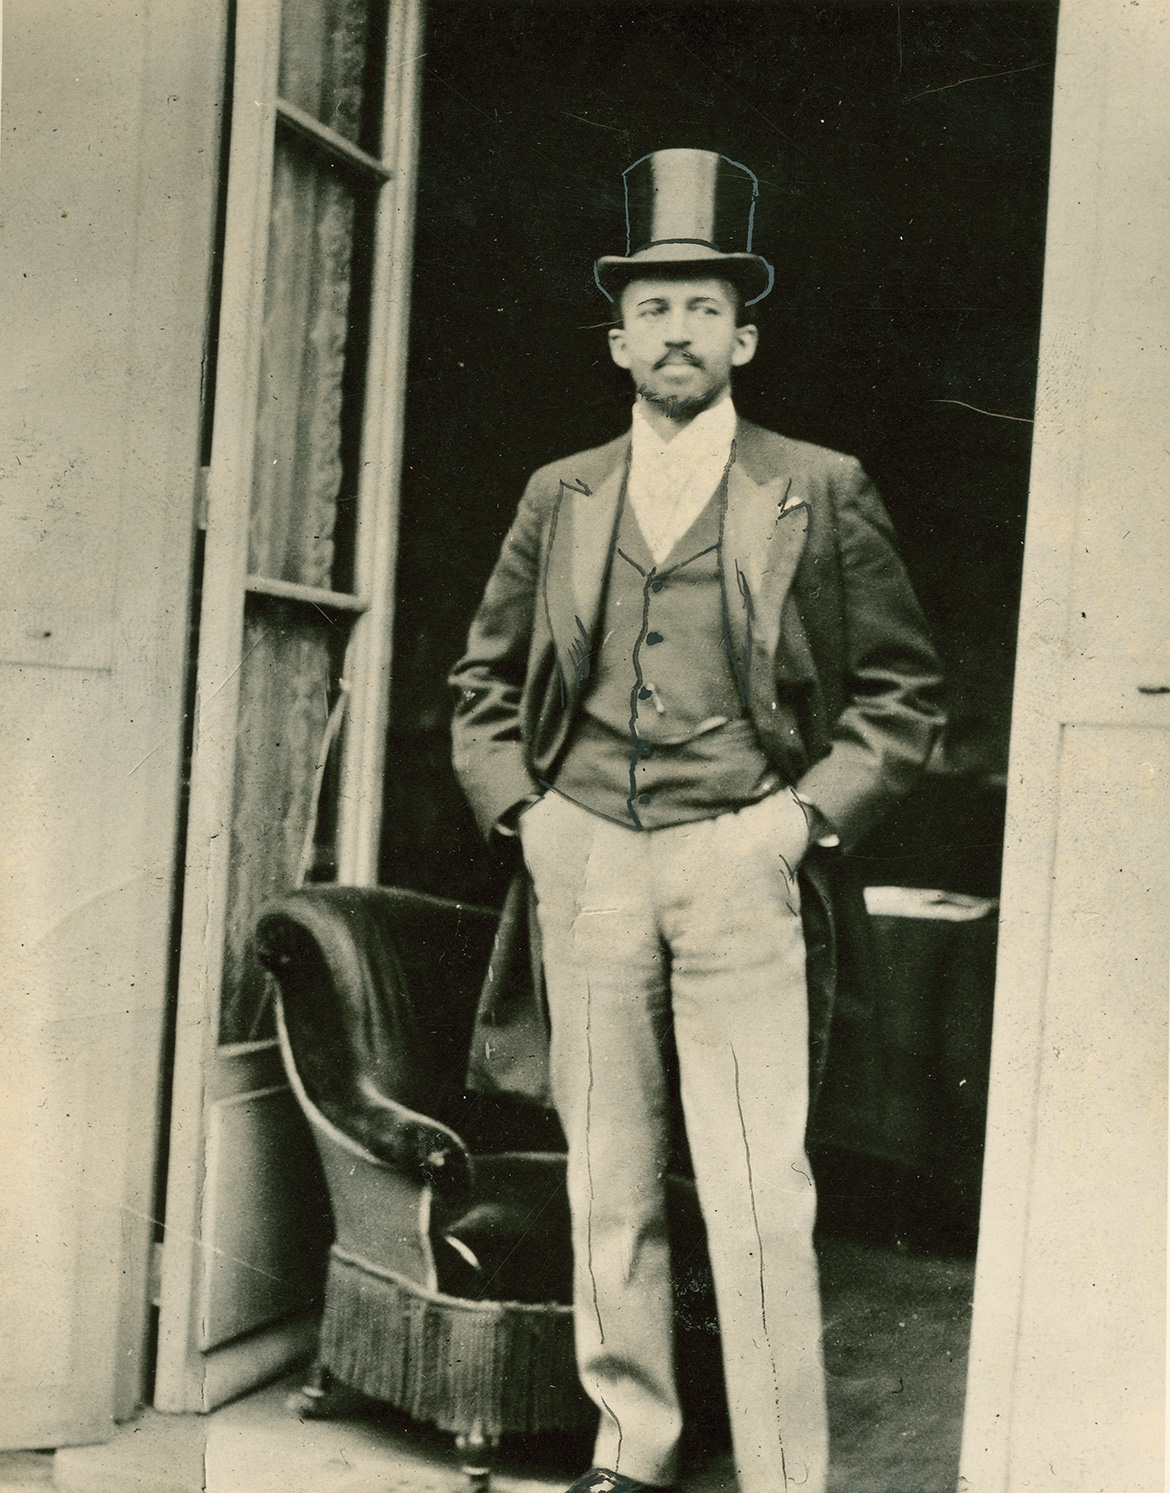 the times and life of w e b du bois at penn penn current w e b du bois at the paris international exposition 1900 photo by w e b du bois collection special collections and university archives umass amherst